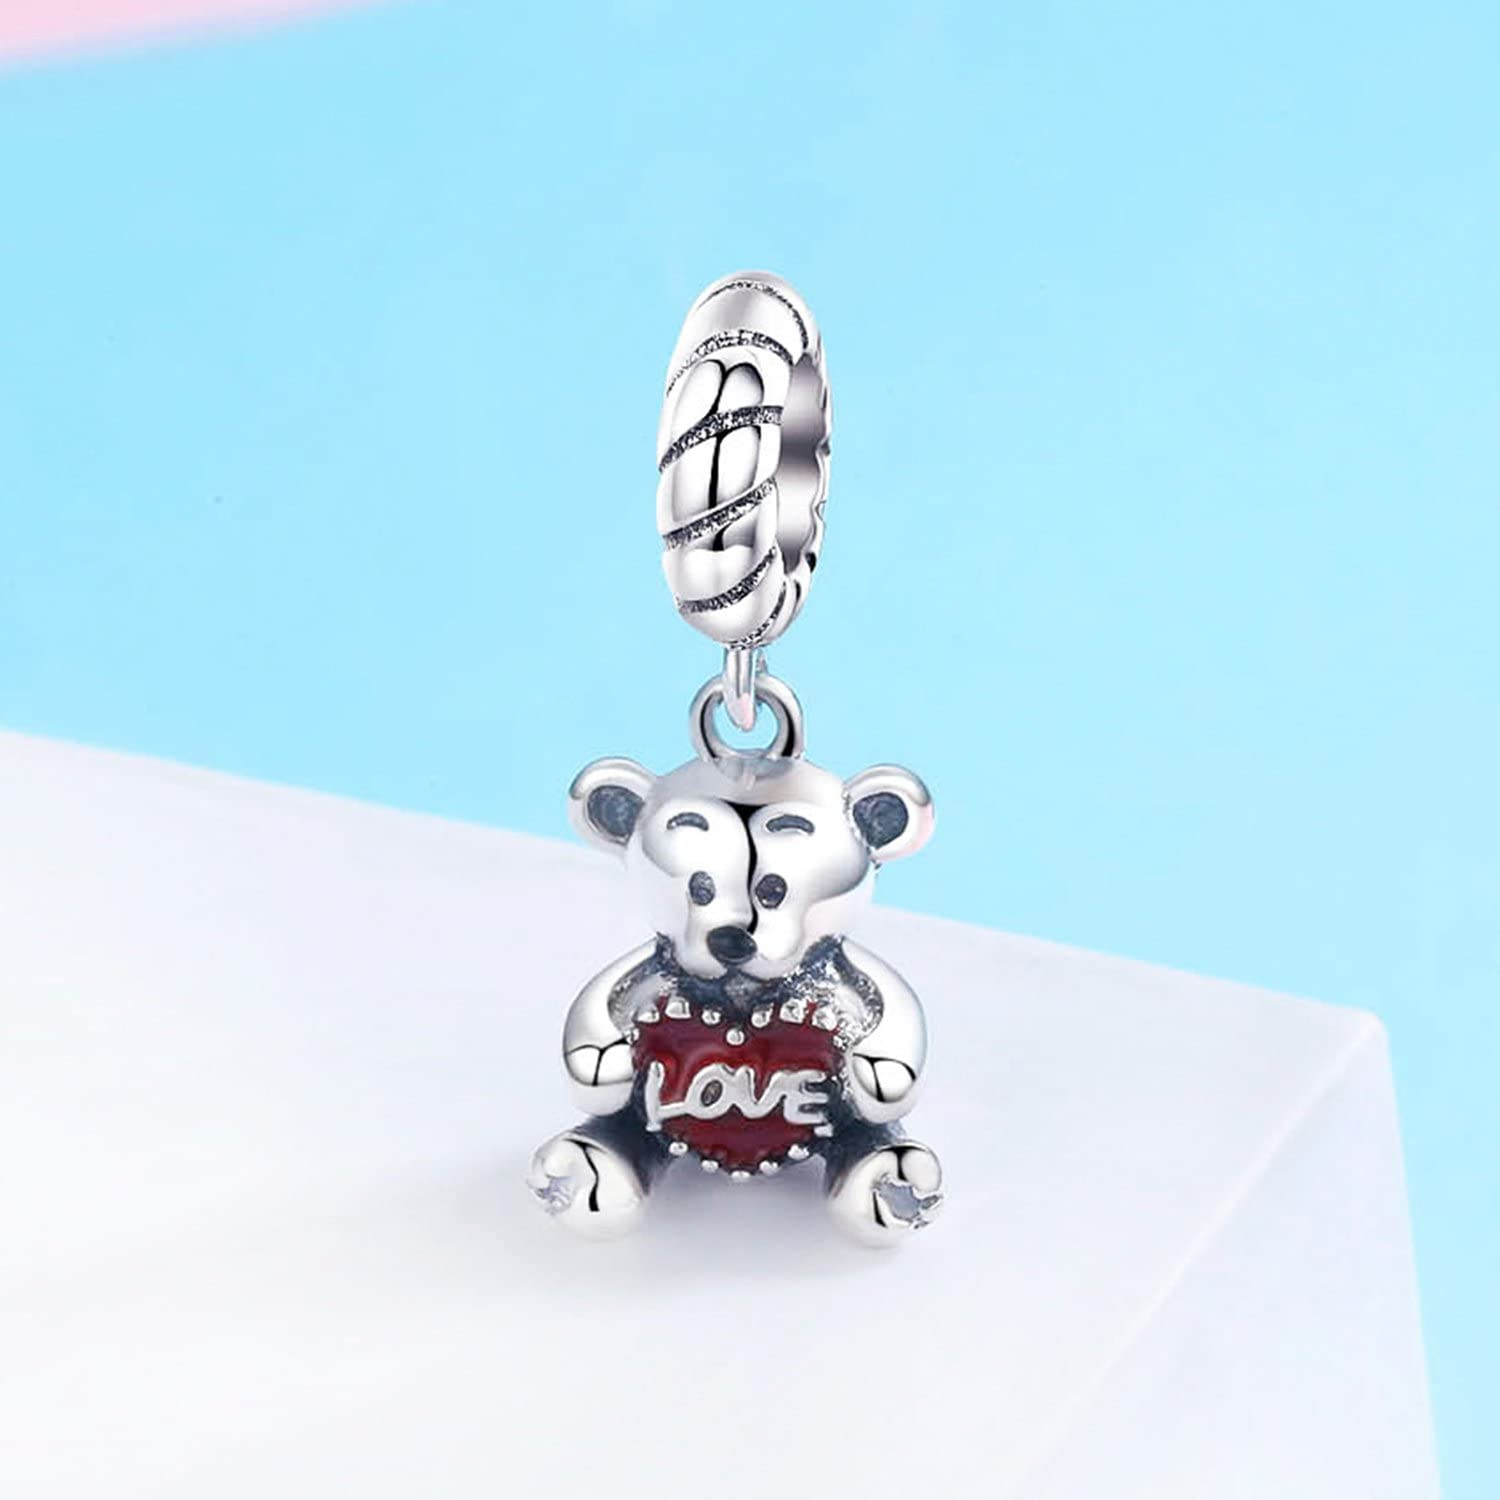 Little Girl Charm Pink Enamel CZ Dangle Charms Pearl Charm fit Charms Bracelet Necklaces Jewelry Birthday Gifts